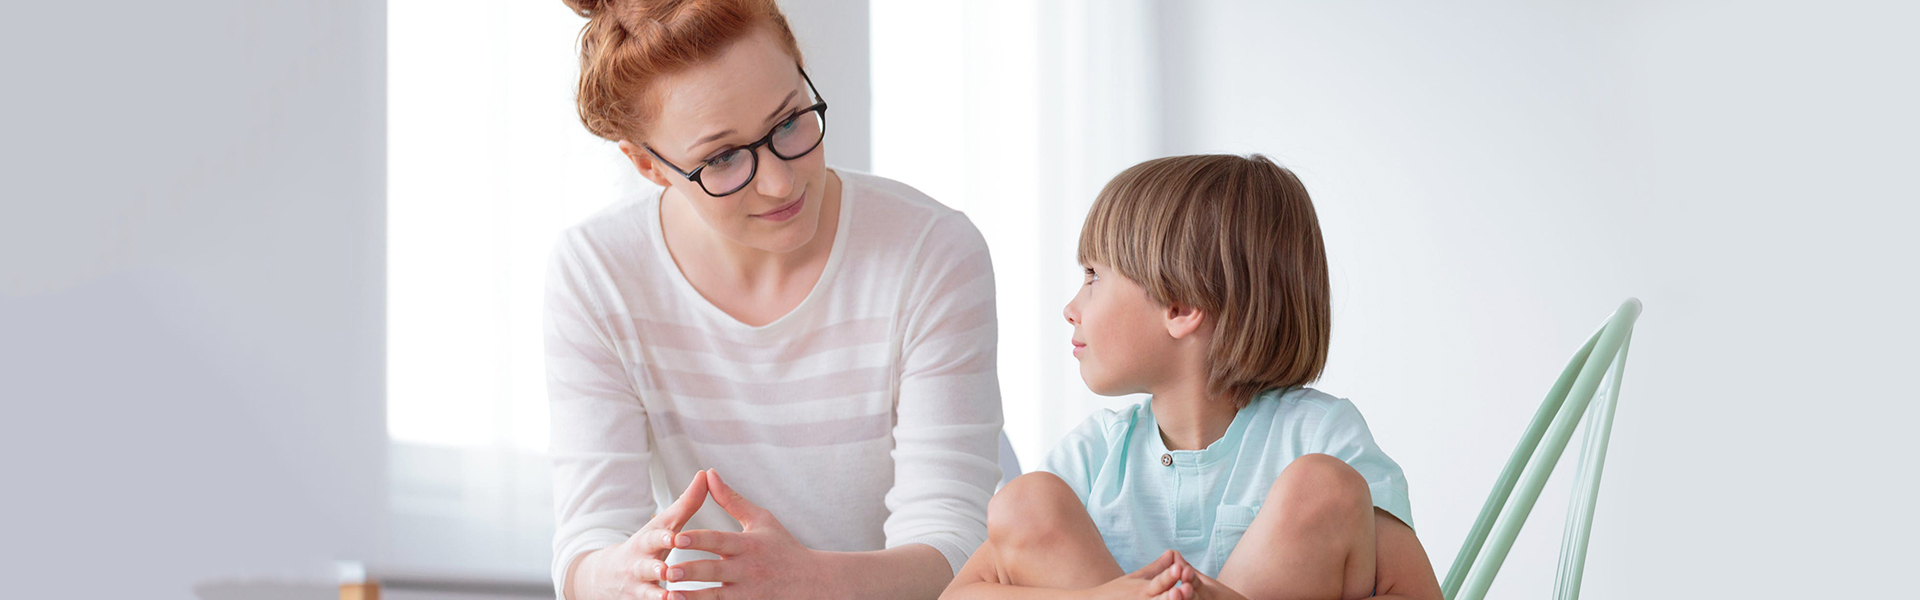 The Most Common Mistakes Parents Make When Disciplining Their Child